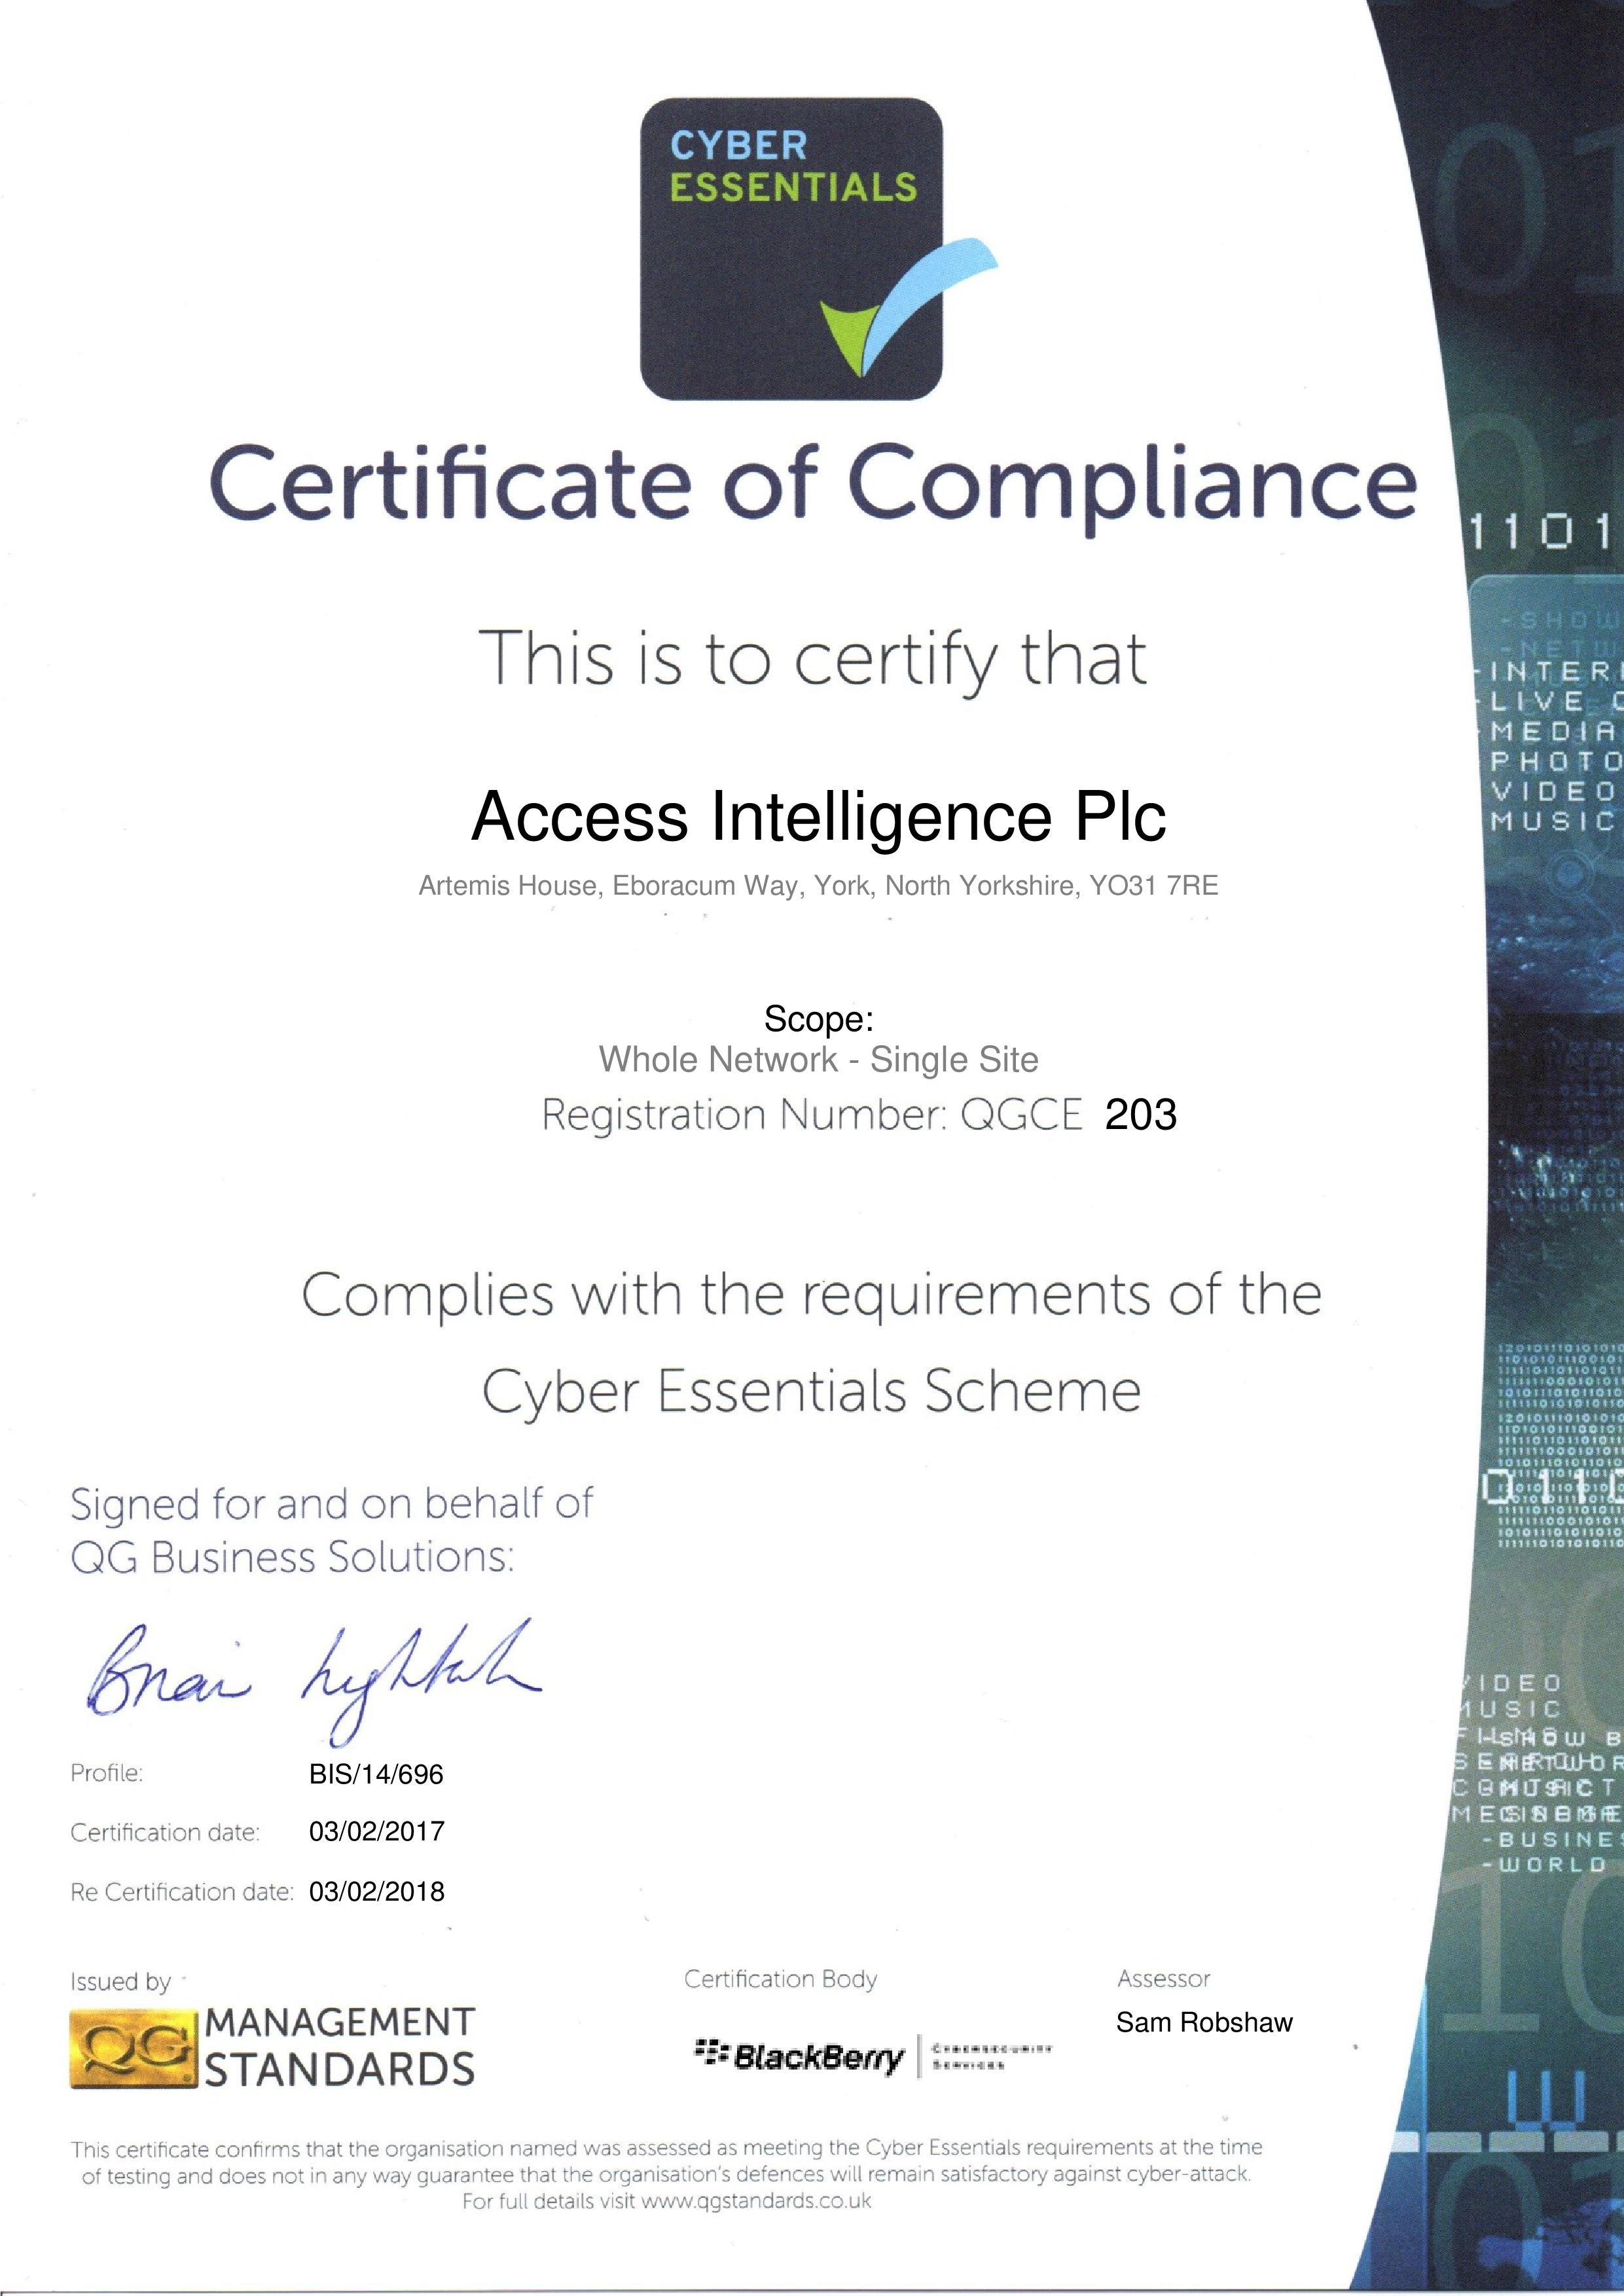 QGCE203 Access Intelligence Plc